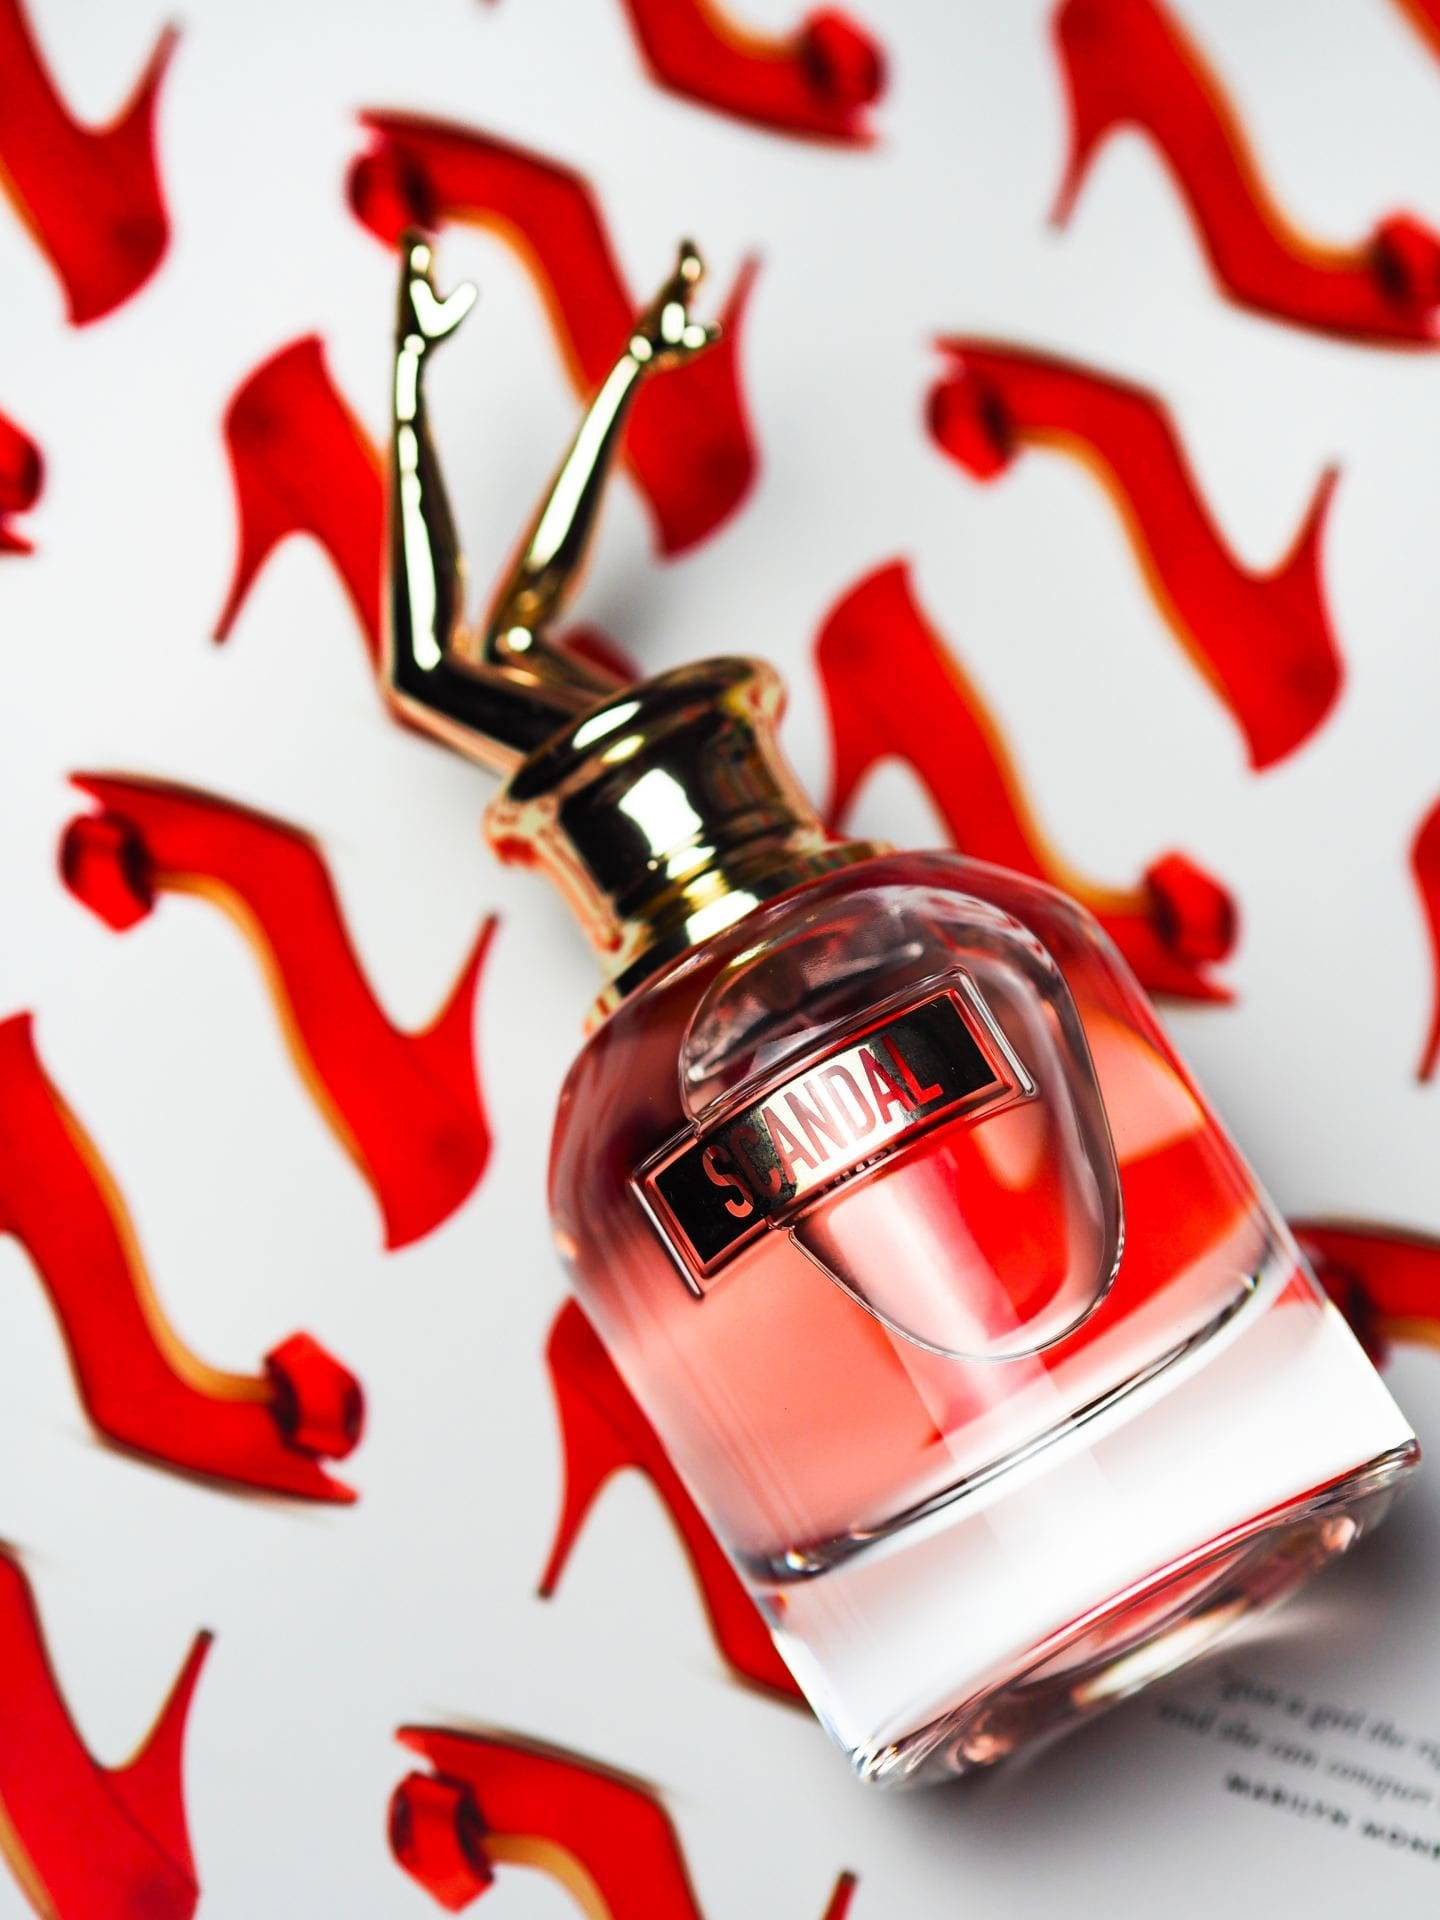 Jean Paul Gaultier 'Scandal'